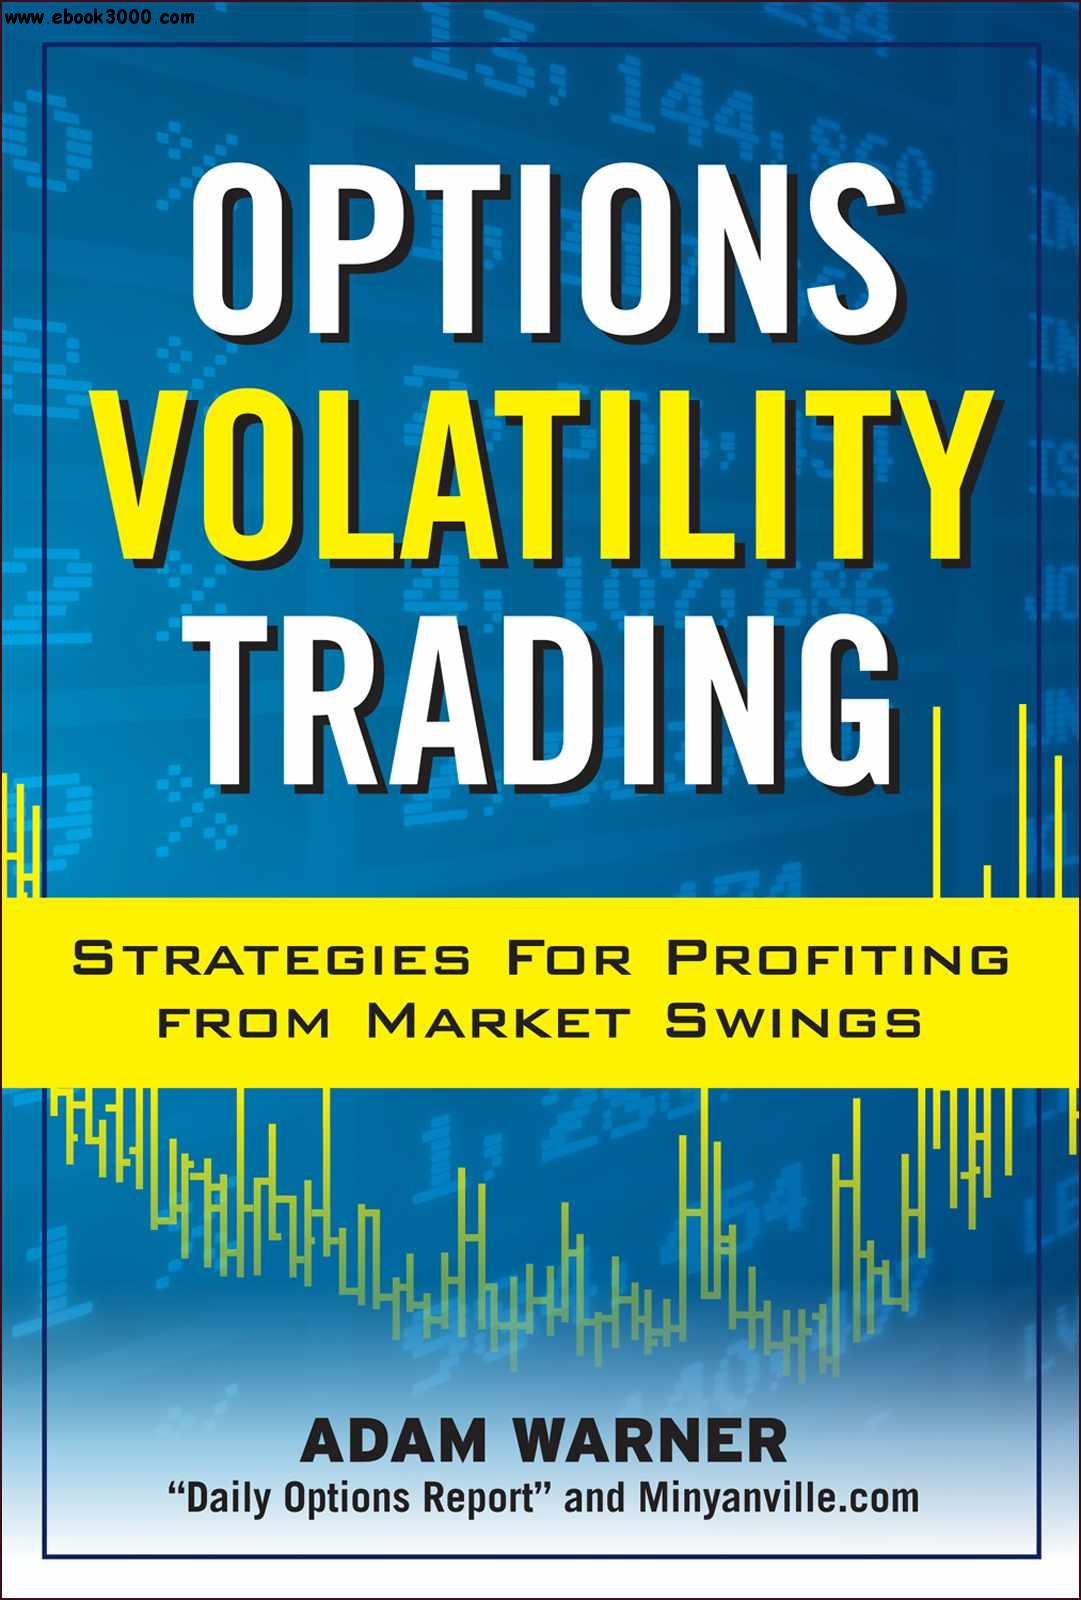 Option volatility trading strategies download